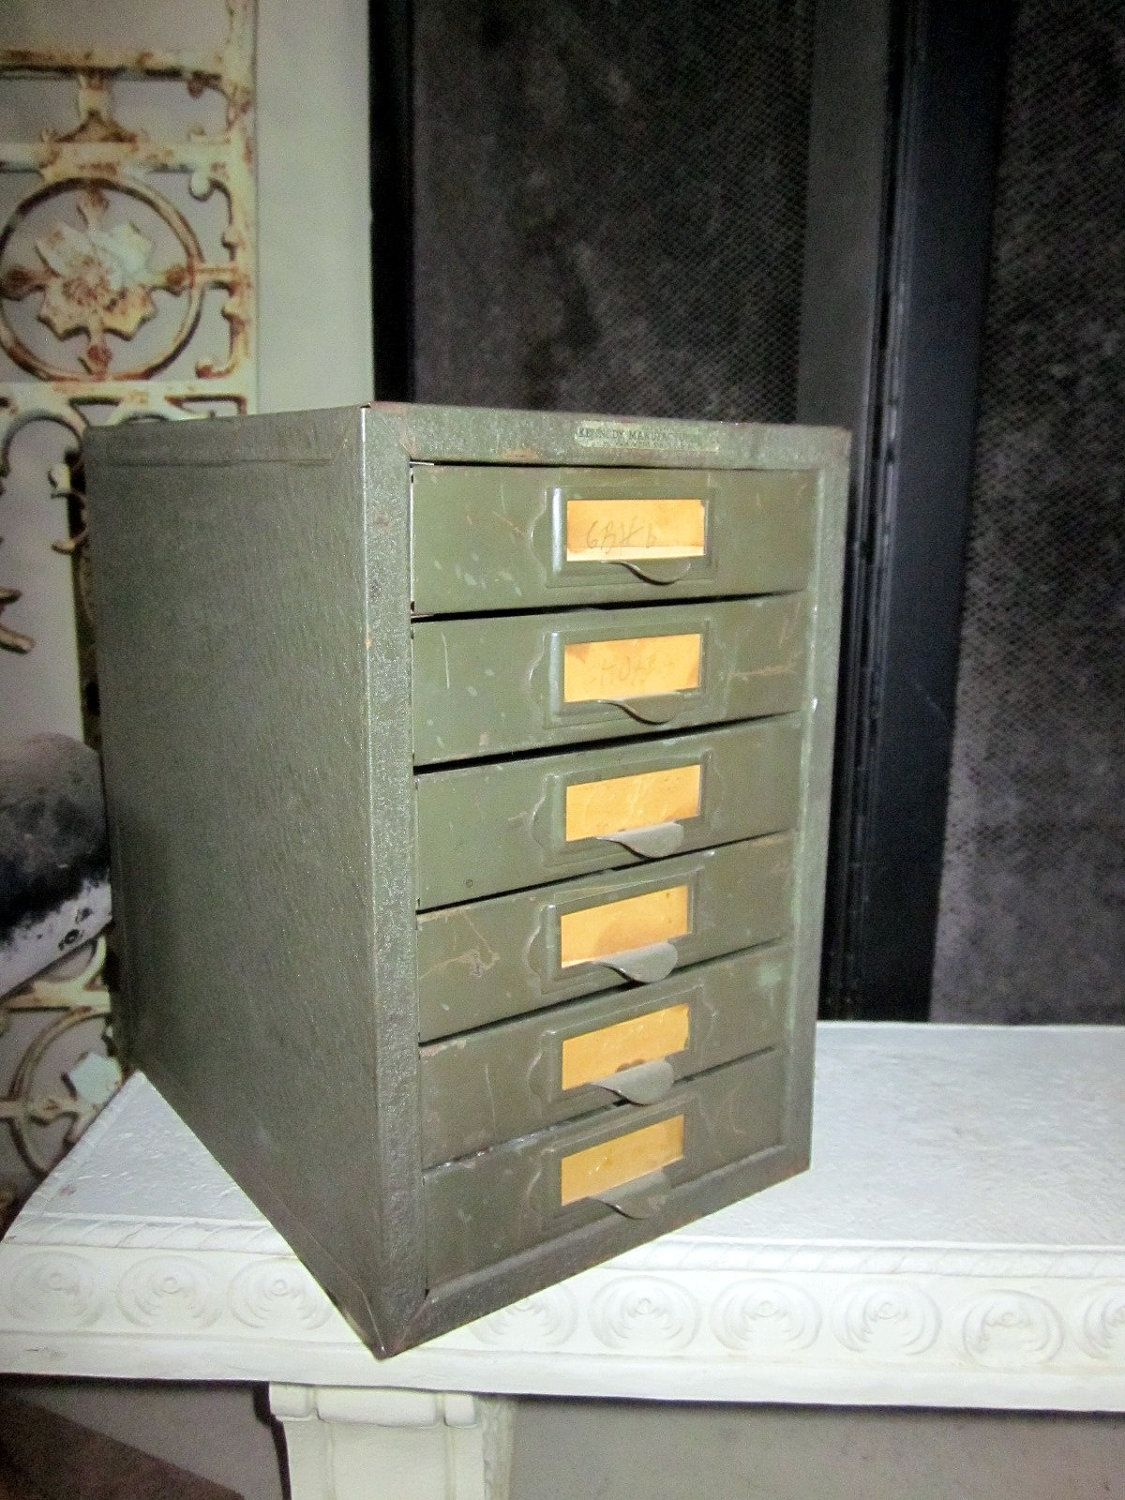 eames machine age industrial file cabinet table top 6  drawer tool chest MASTER    Steampunk. $86.50, via Etsy.